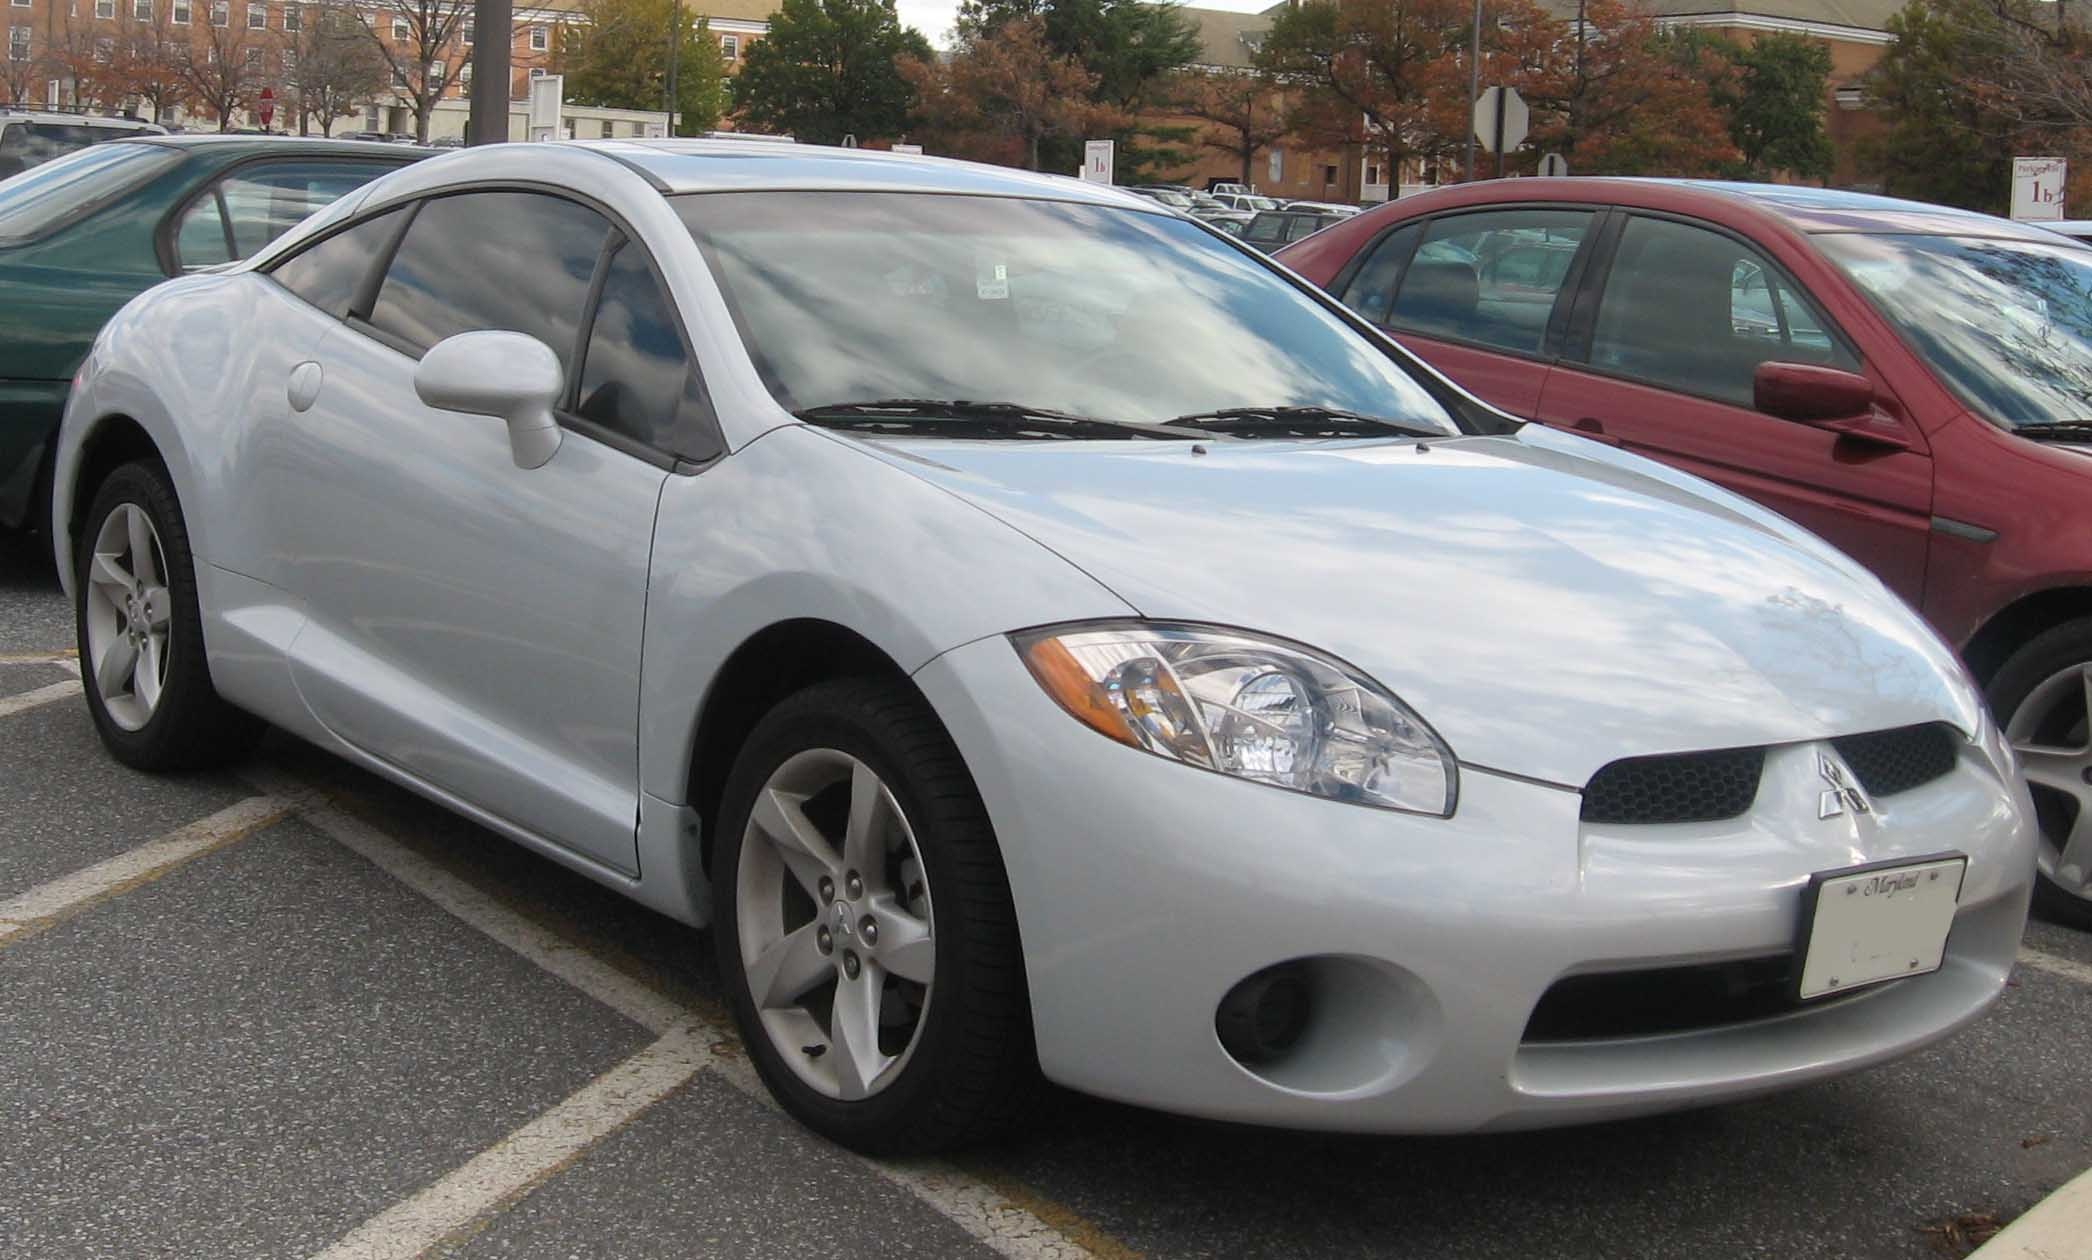 mitsubishi eclipse iv 2007 pictures #2